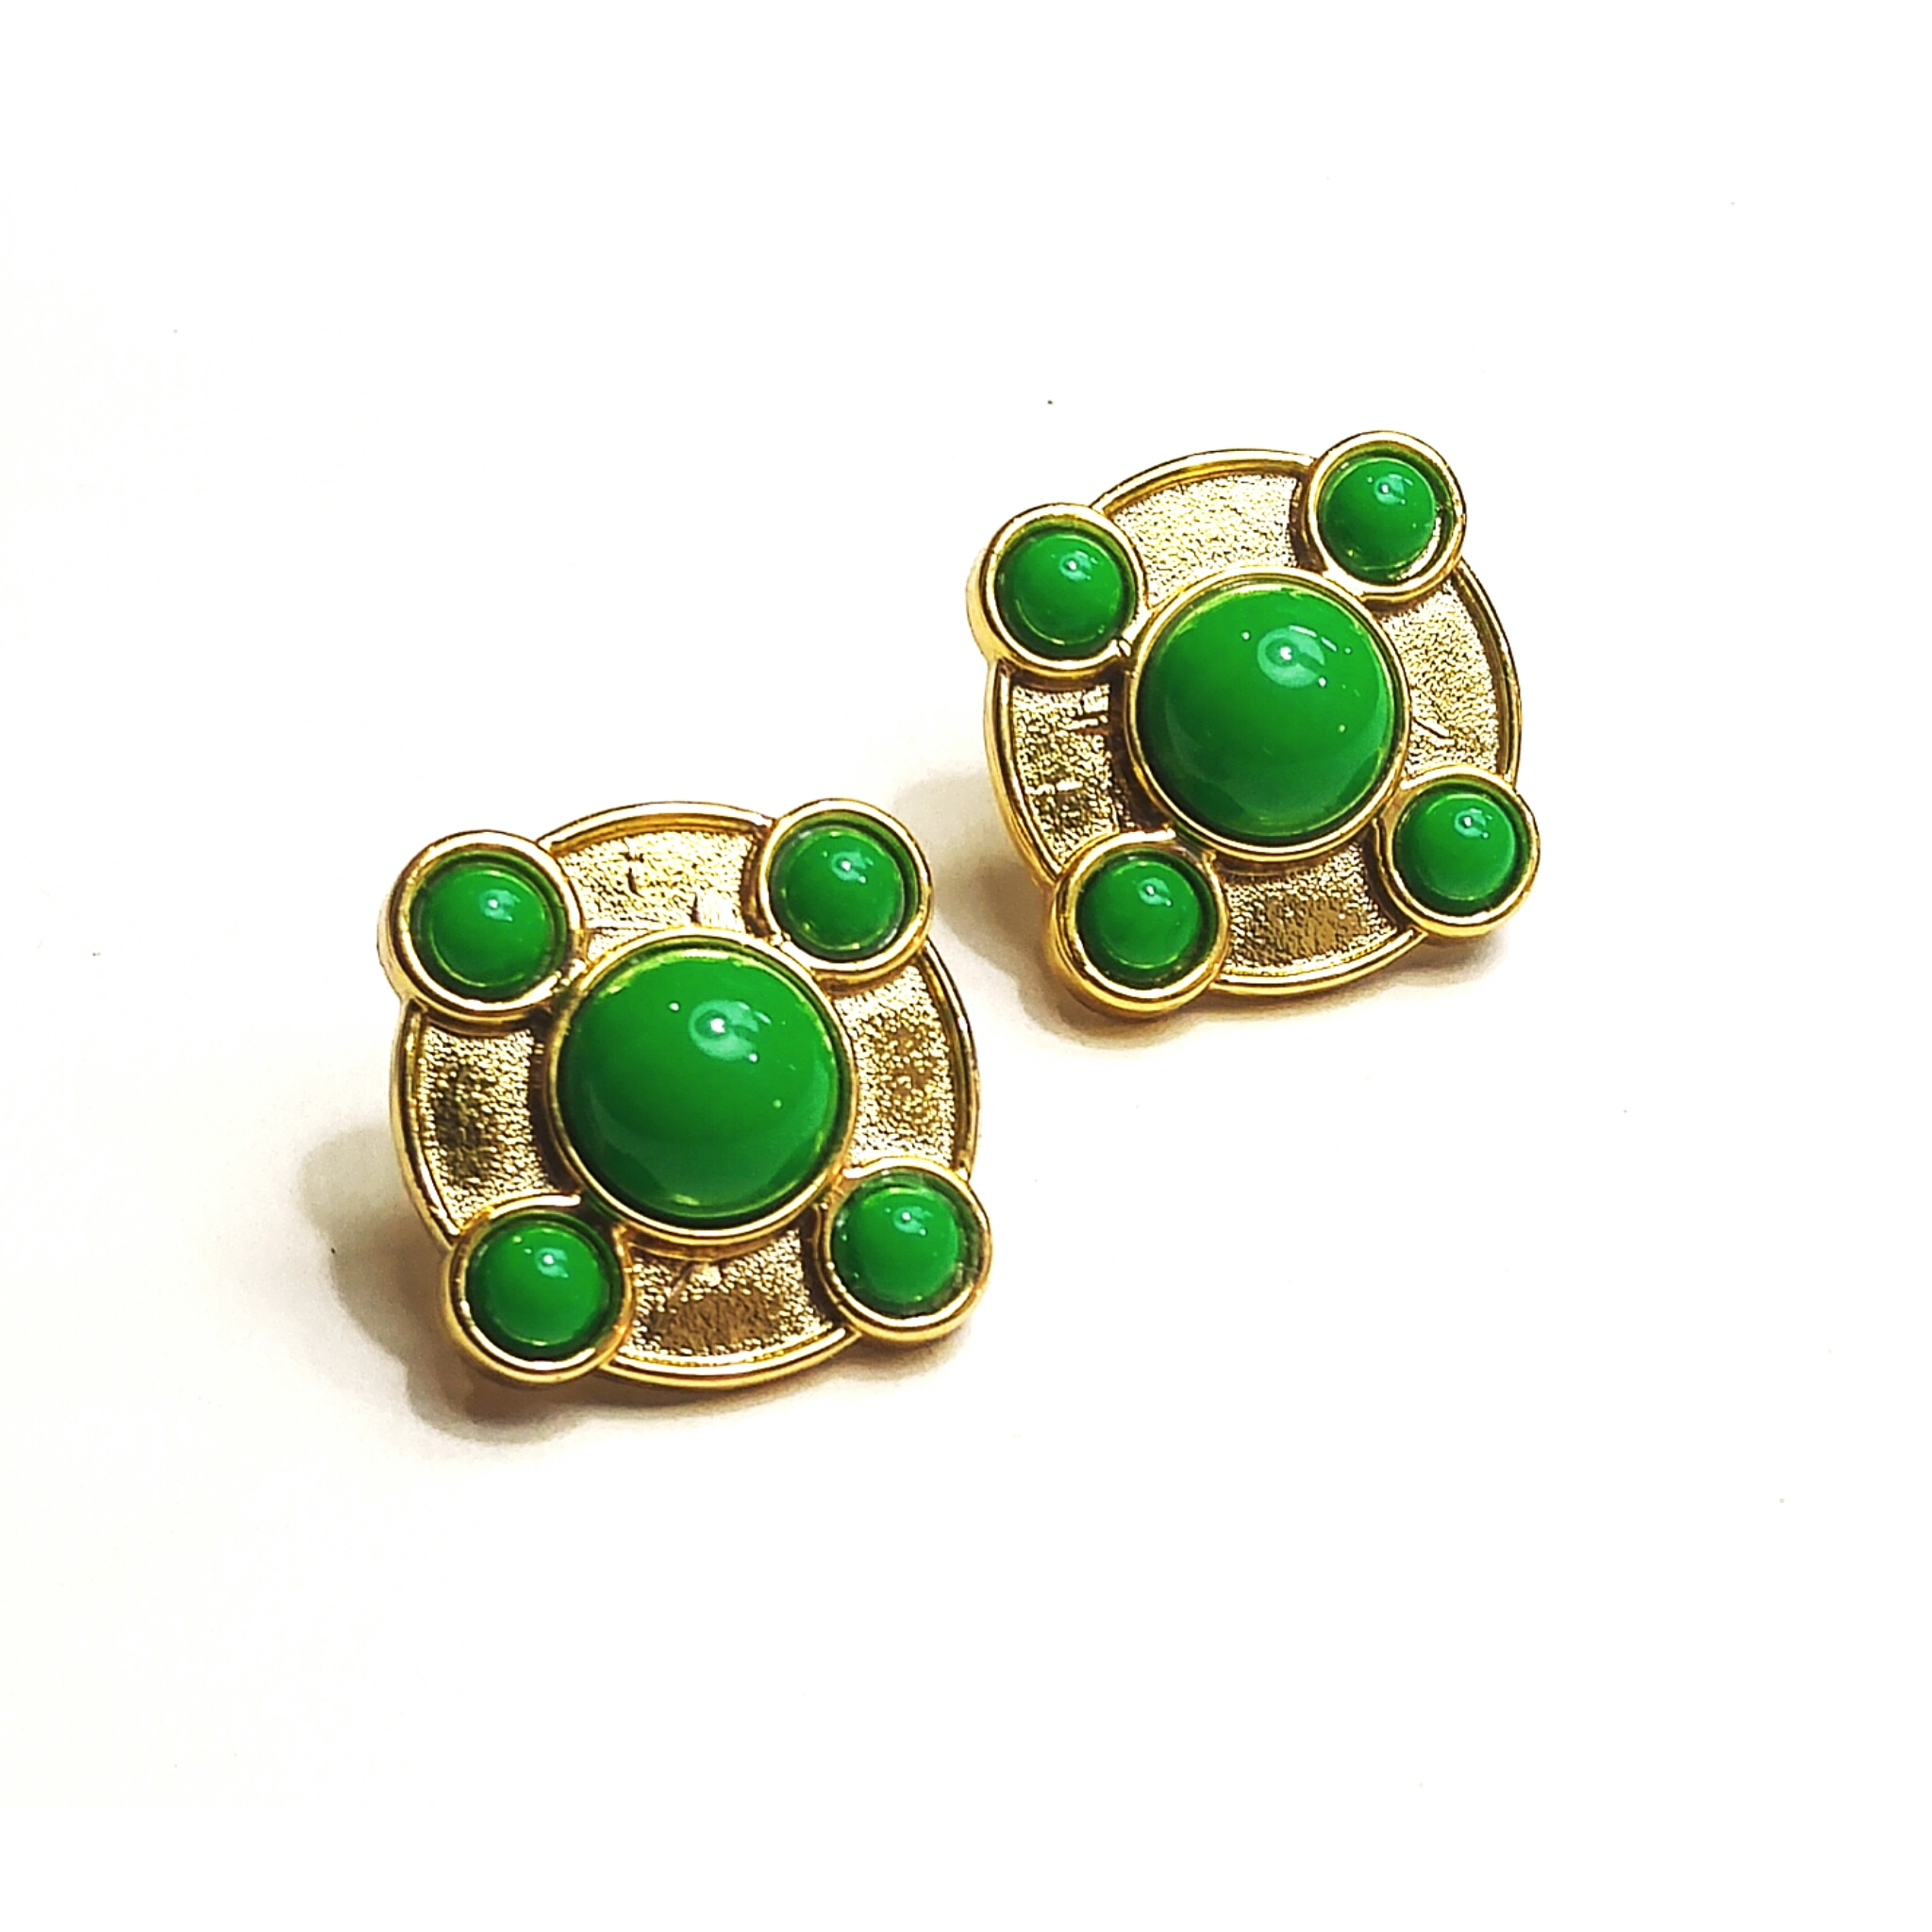 Fantastic plastic gold and green vintage studs!